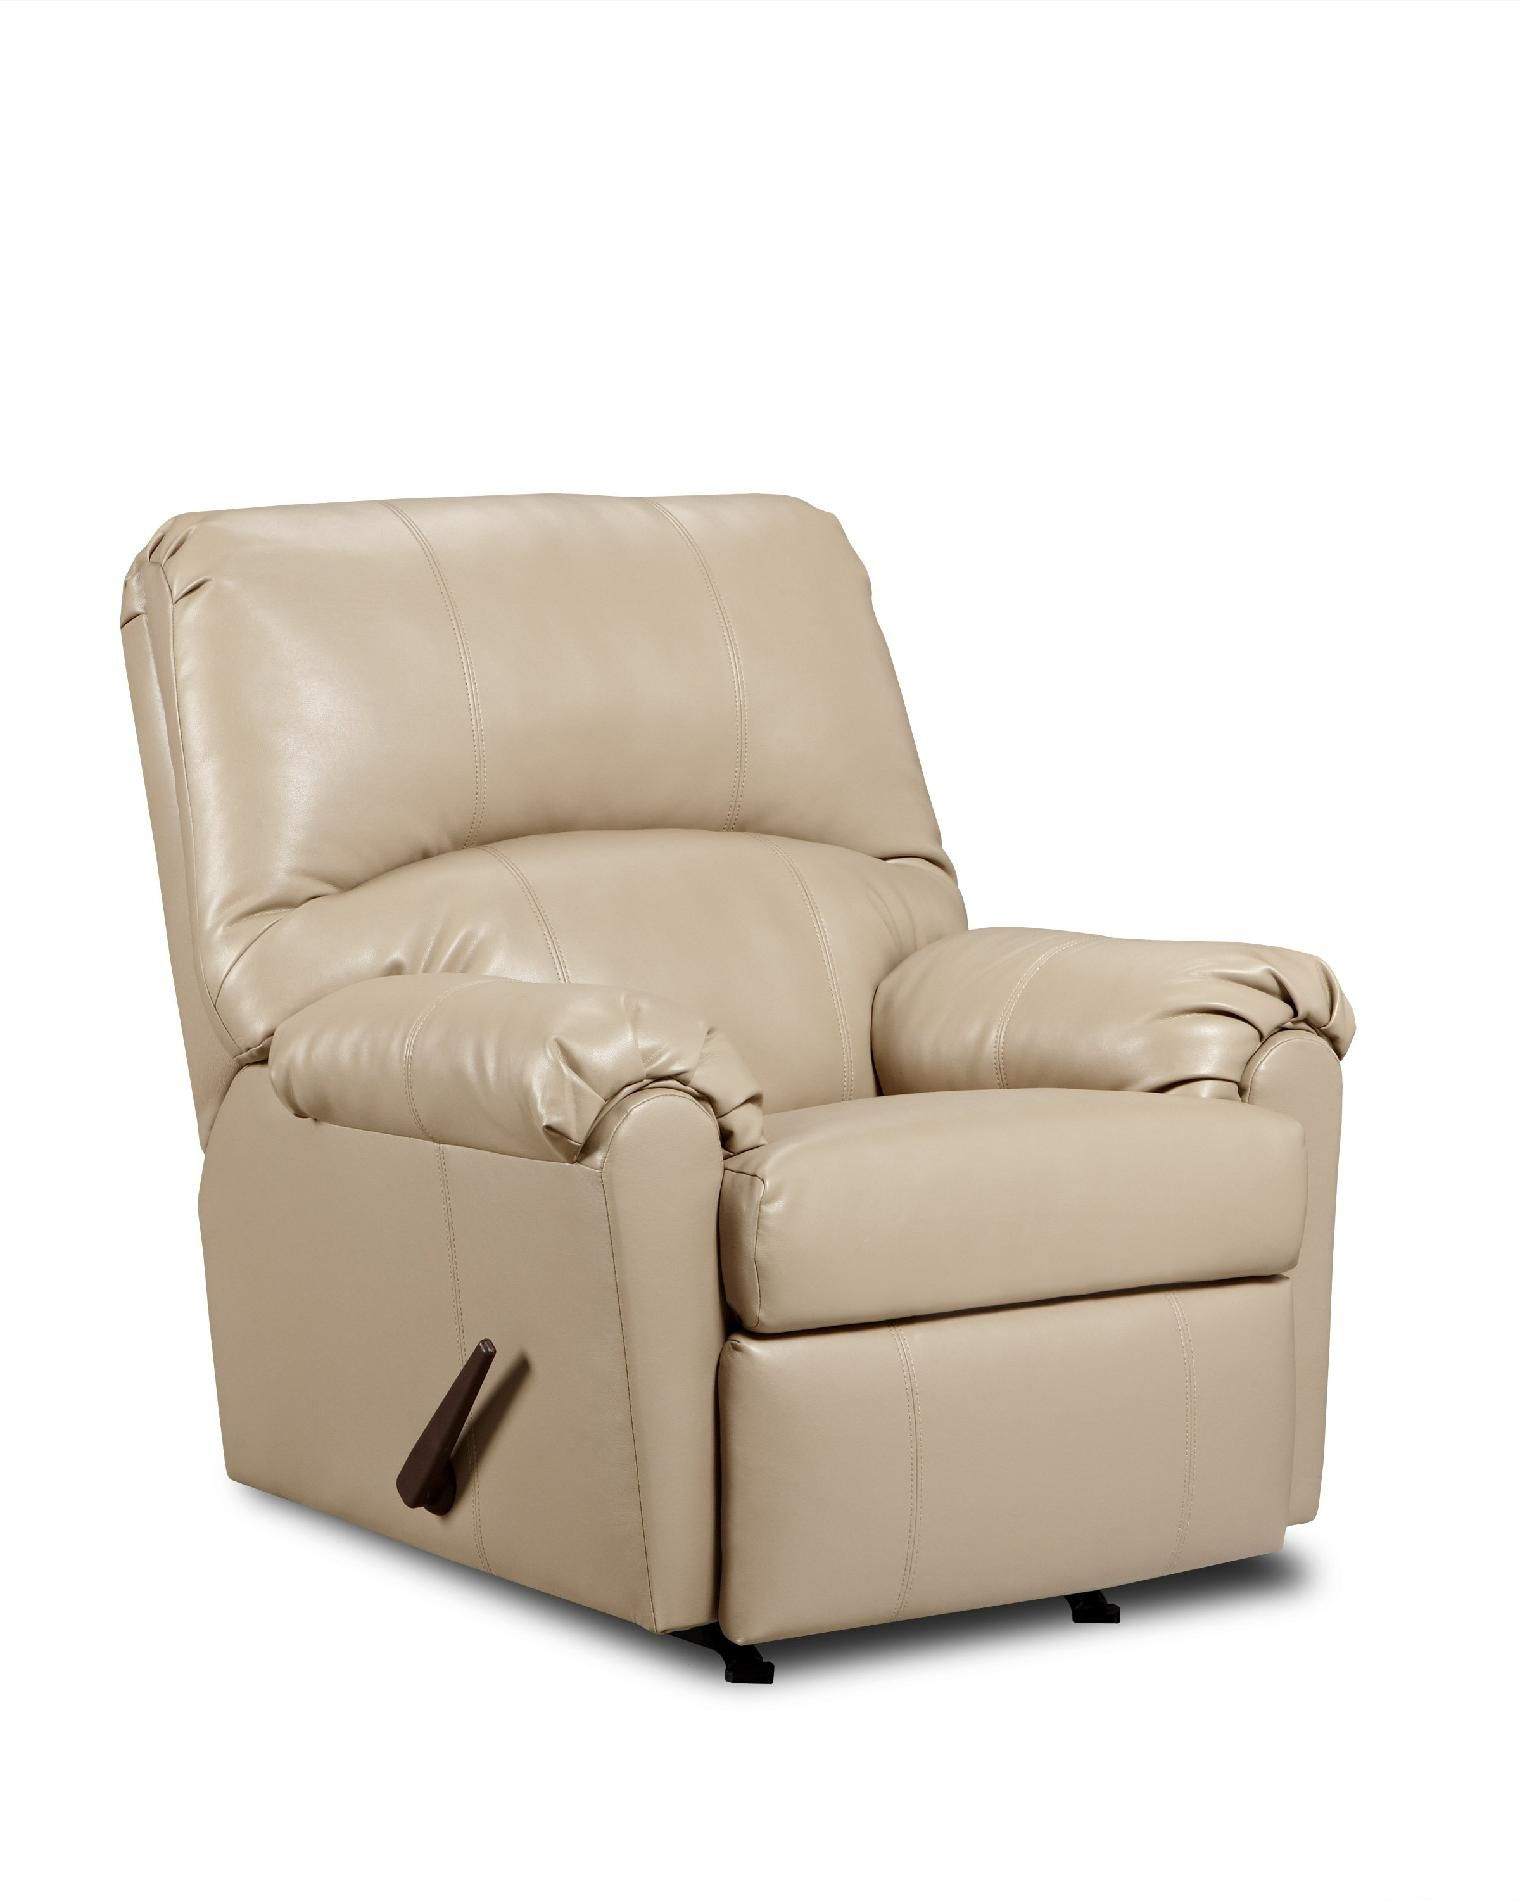 Simmons Upholstery Bradford 3 Way Rocker/Recliner